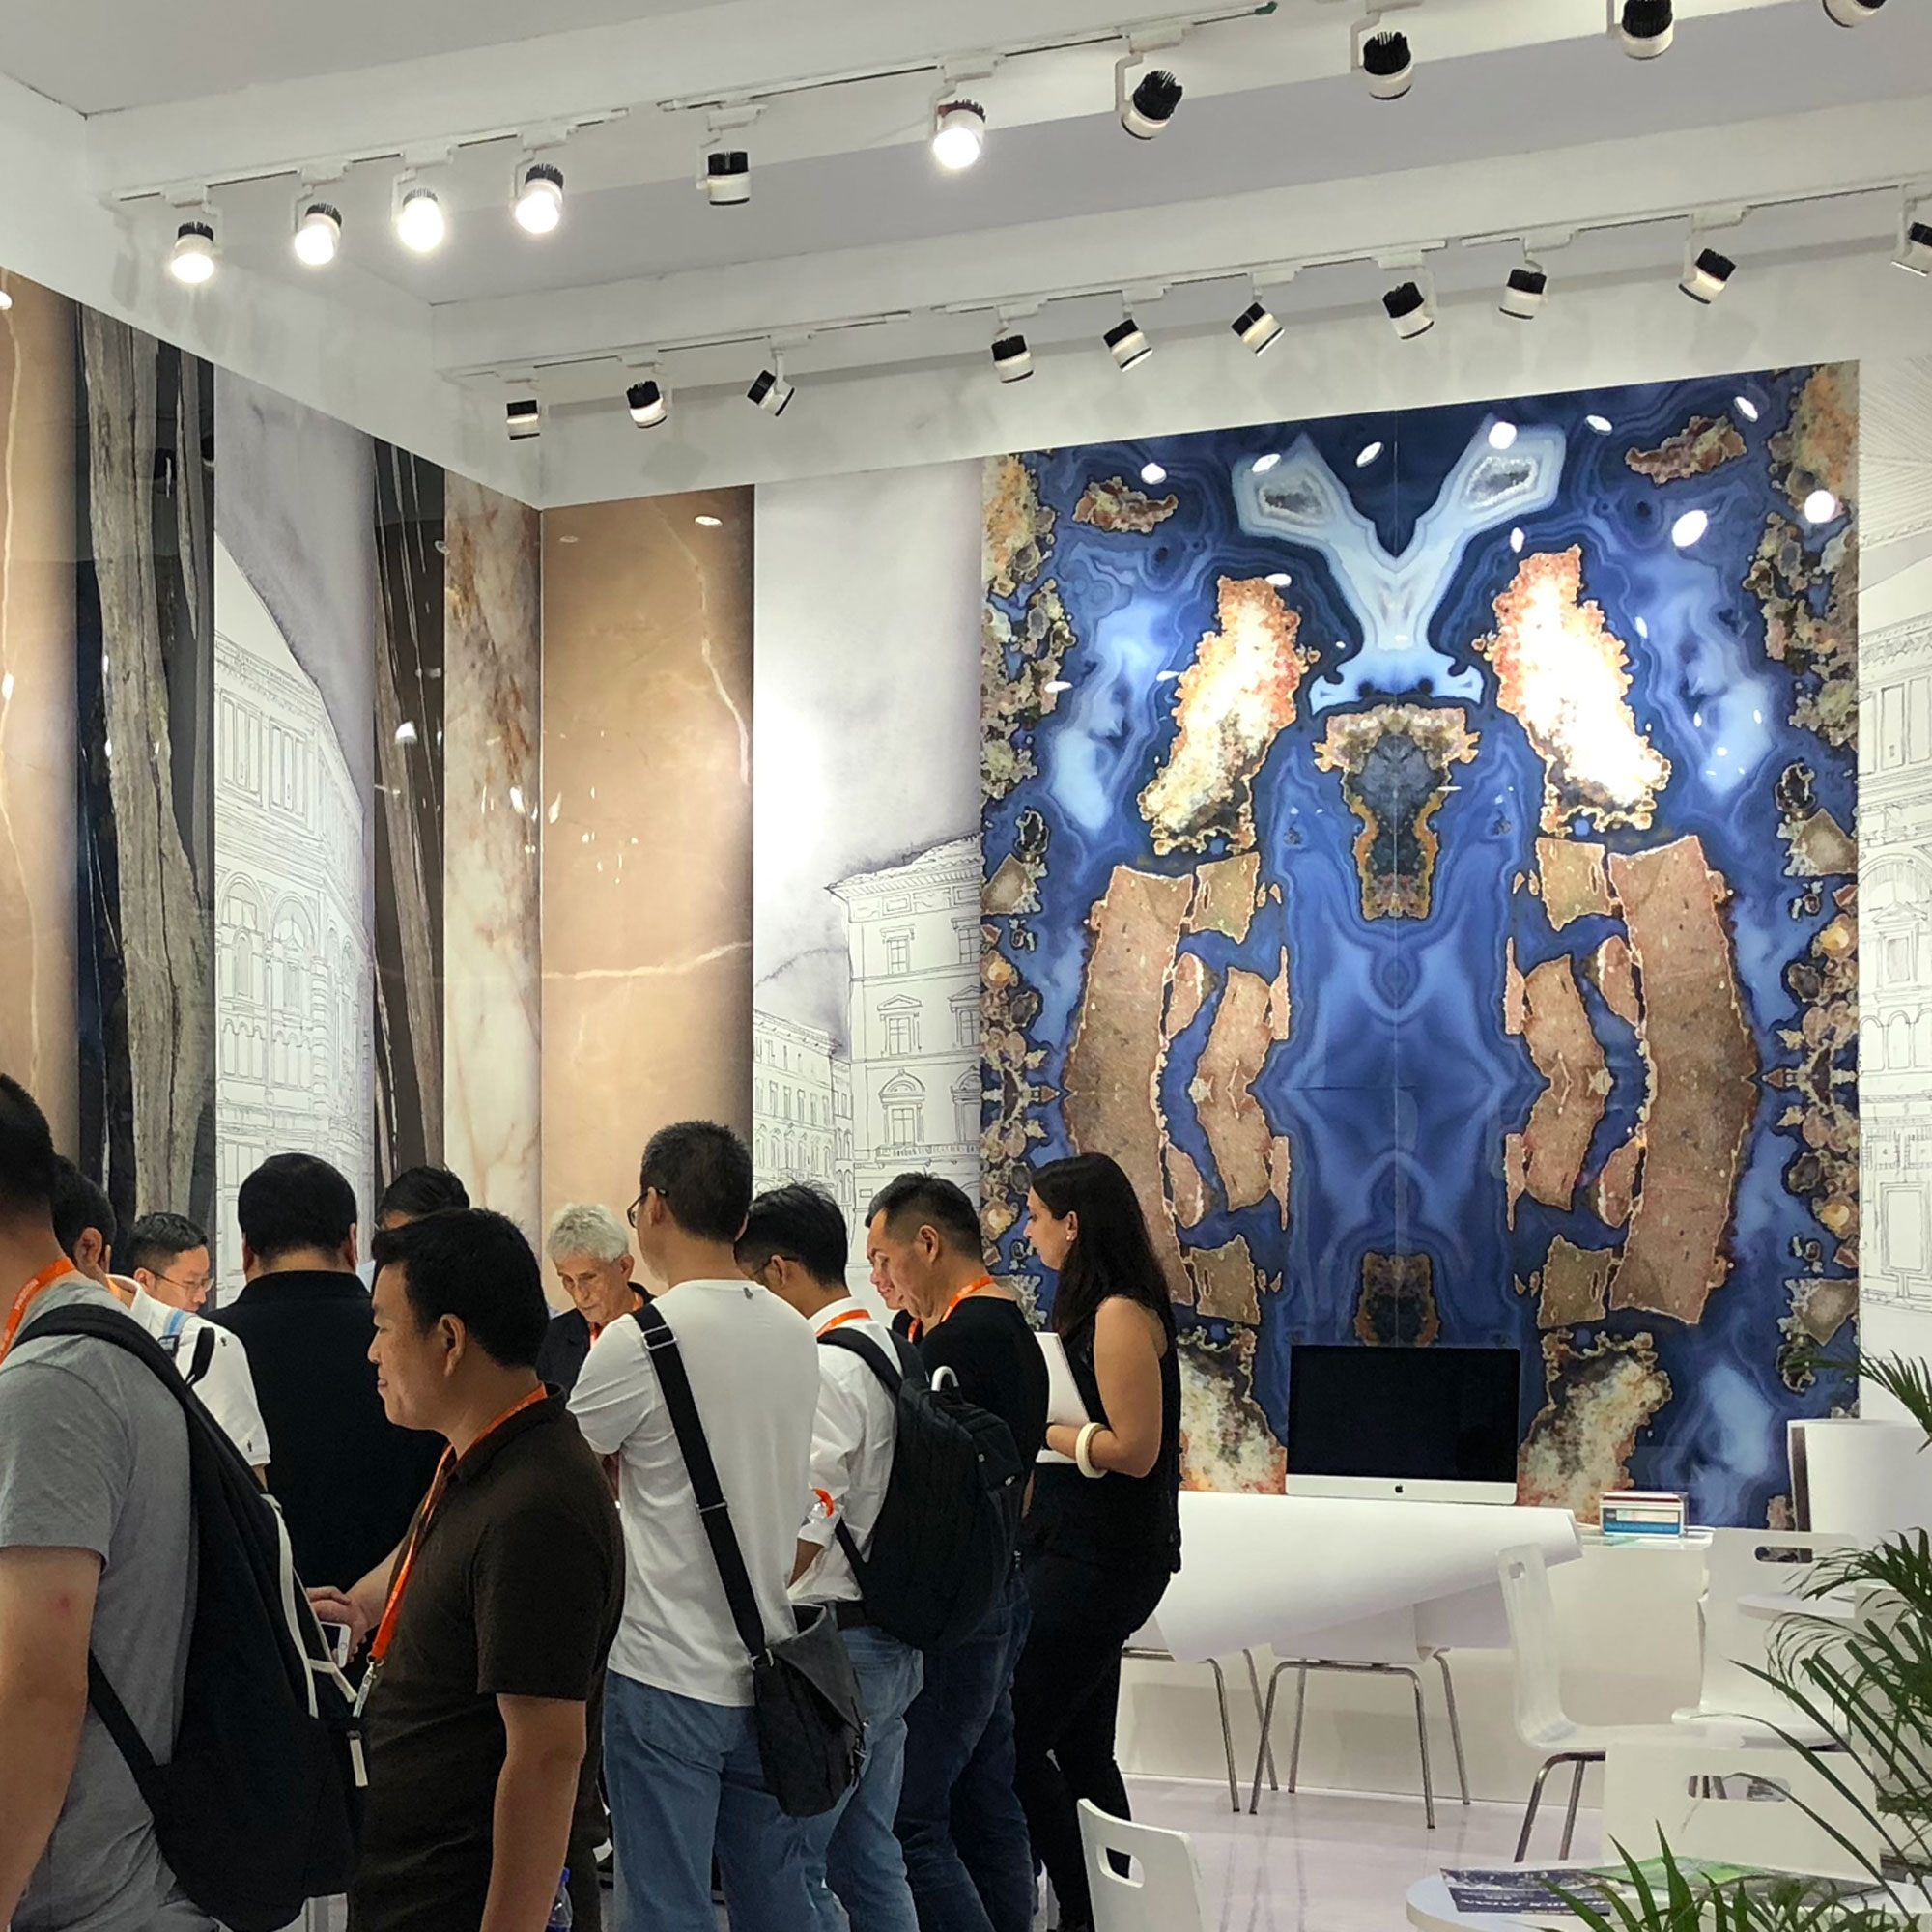 Exhibition Booth Decoration : Decorative panels in exhibition booth